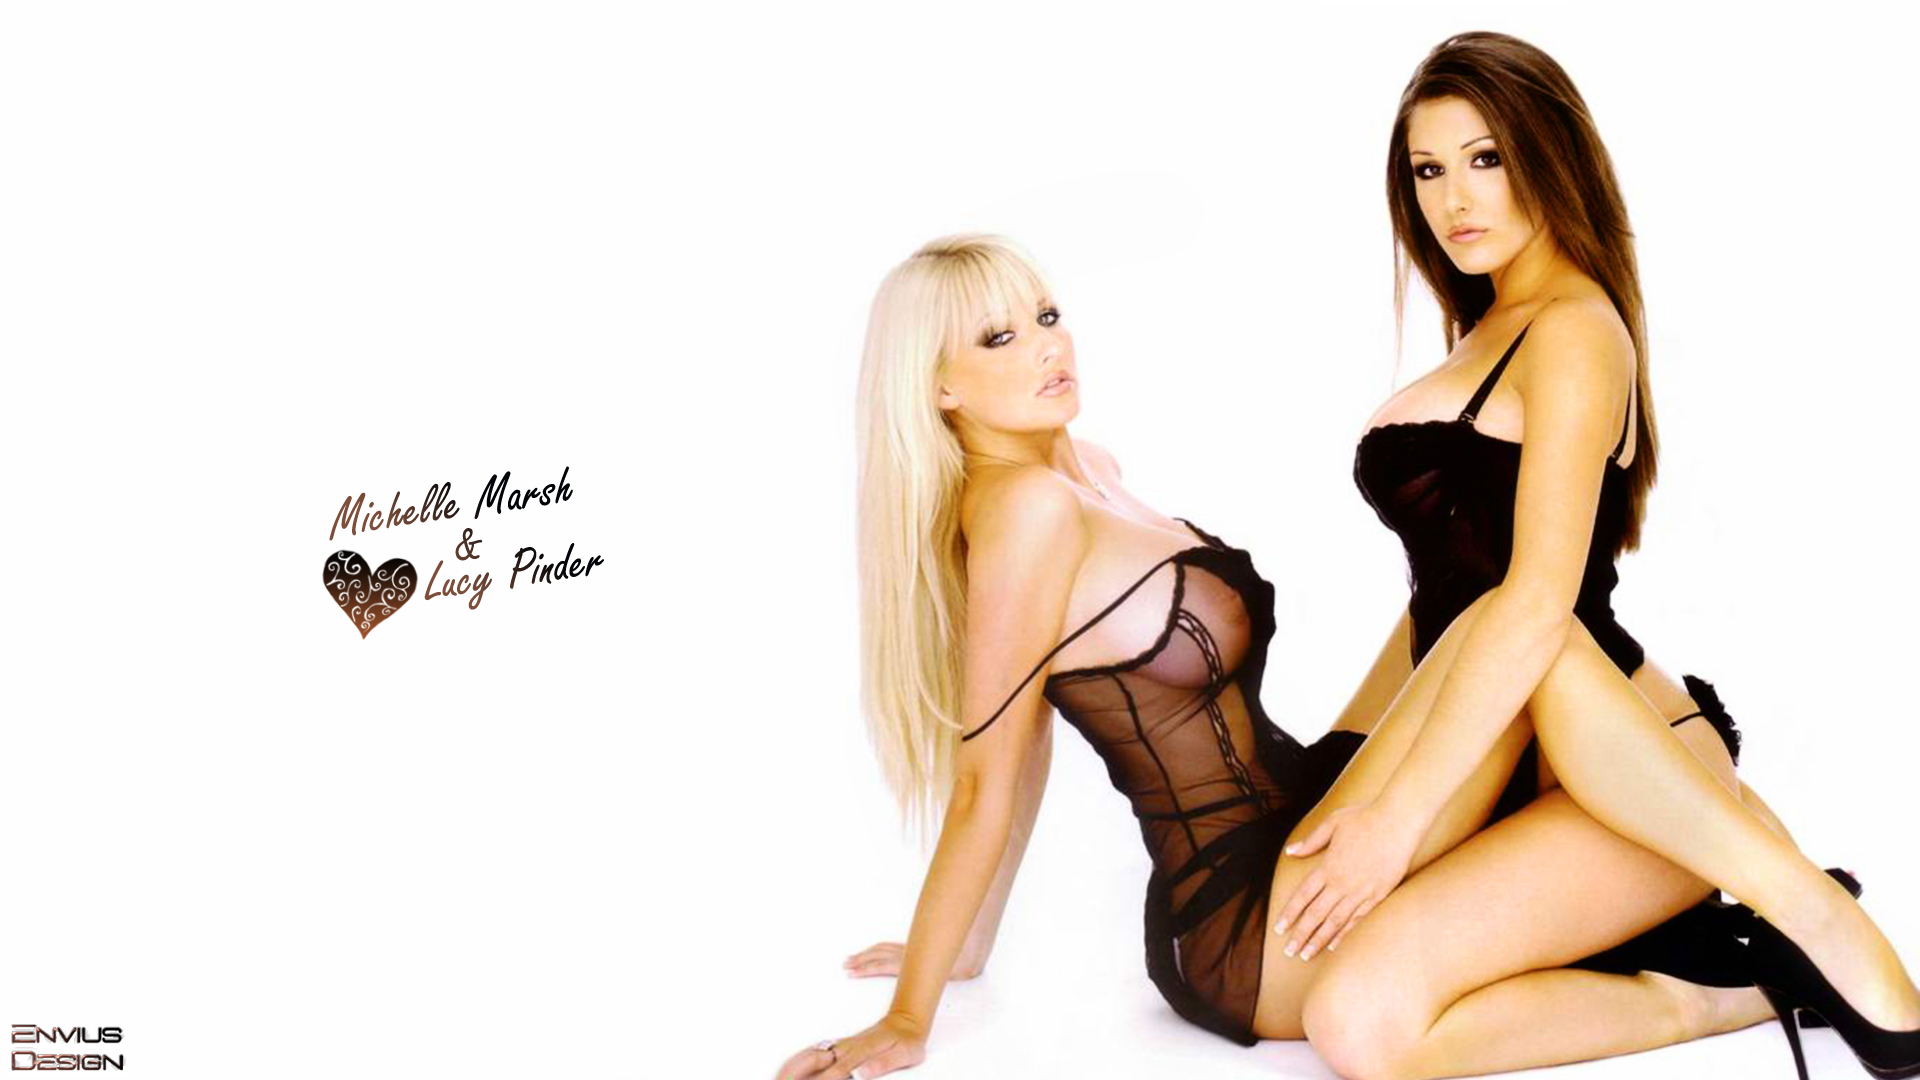 Lucy+Pinder+Michelle+Marsh+Wallpaper Lucy Pinder Michelle Marsh Kiss ...